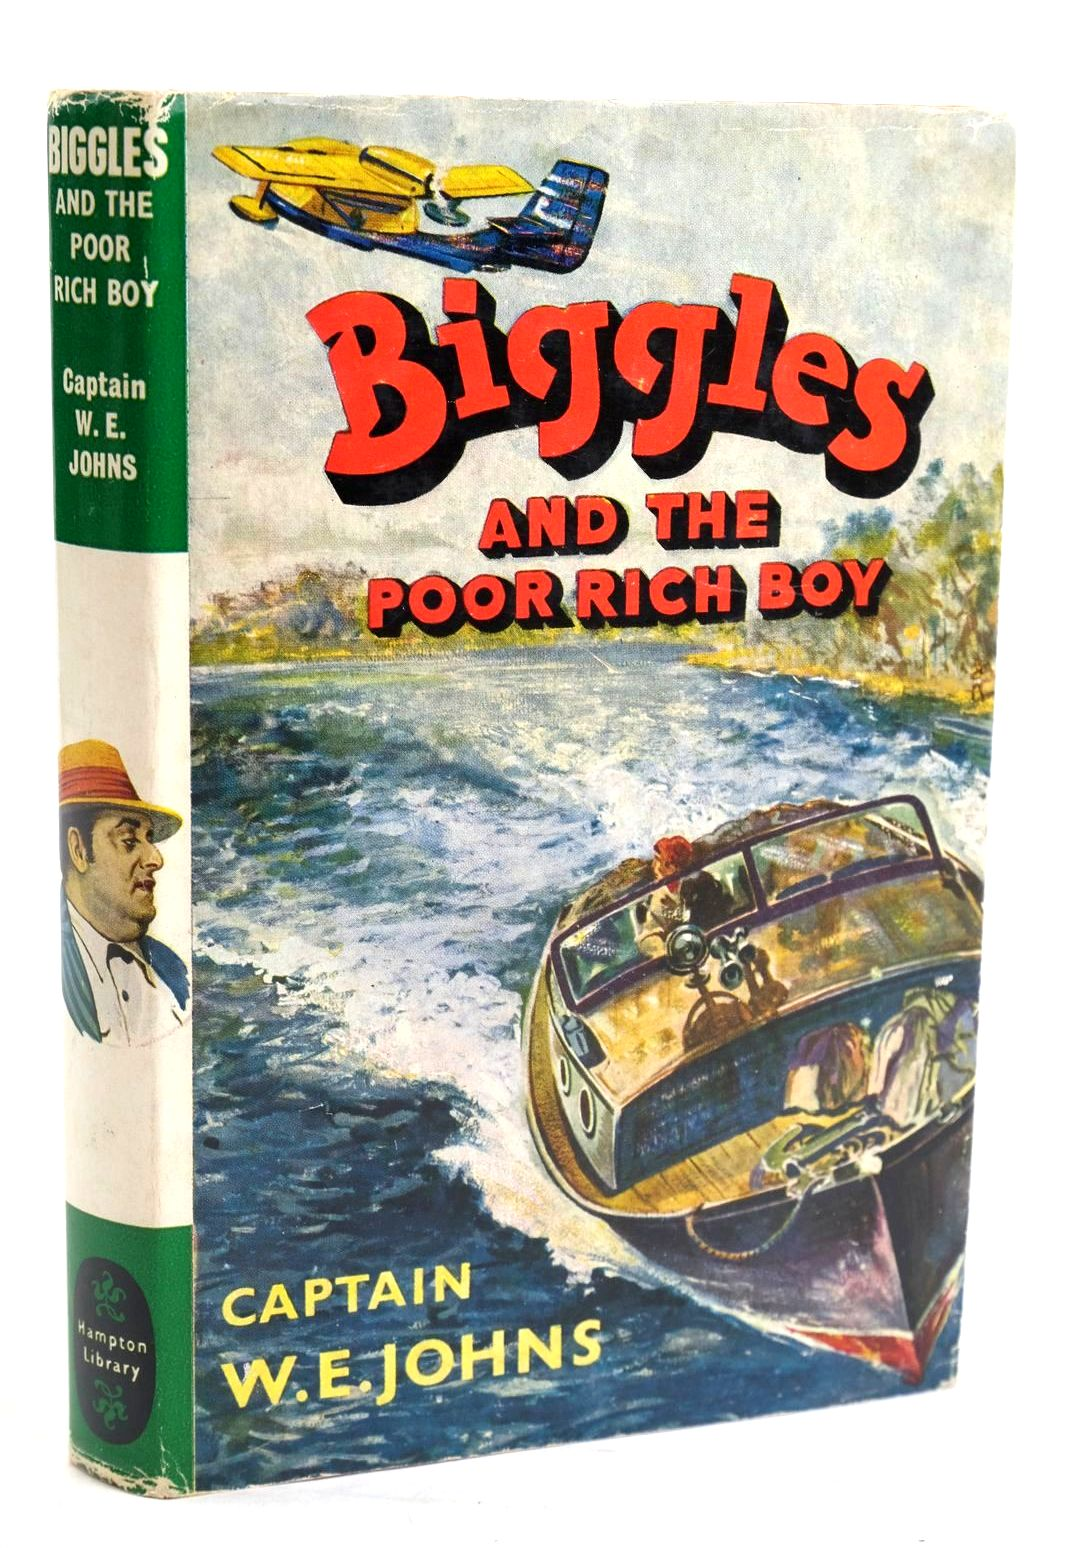 Photo of BIGGLES AND THE POOR RICH BOY written by Johns, W.E. illustrated by Stead, Leslie published by Brockhampton Press Ltd. (STOCK CODE: 1319743)  for sale by Stella & Rose's Books